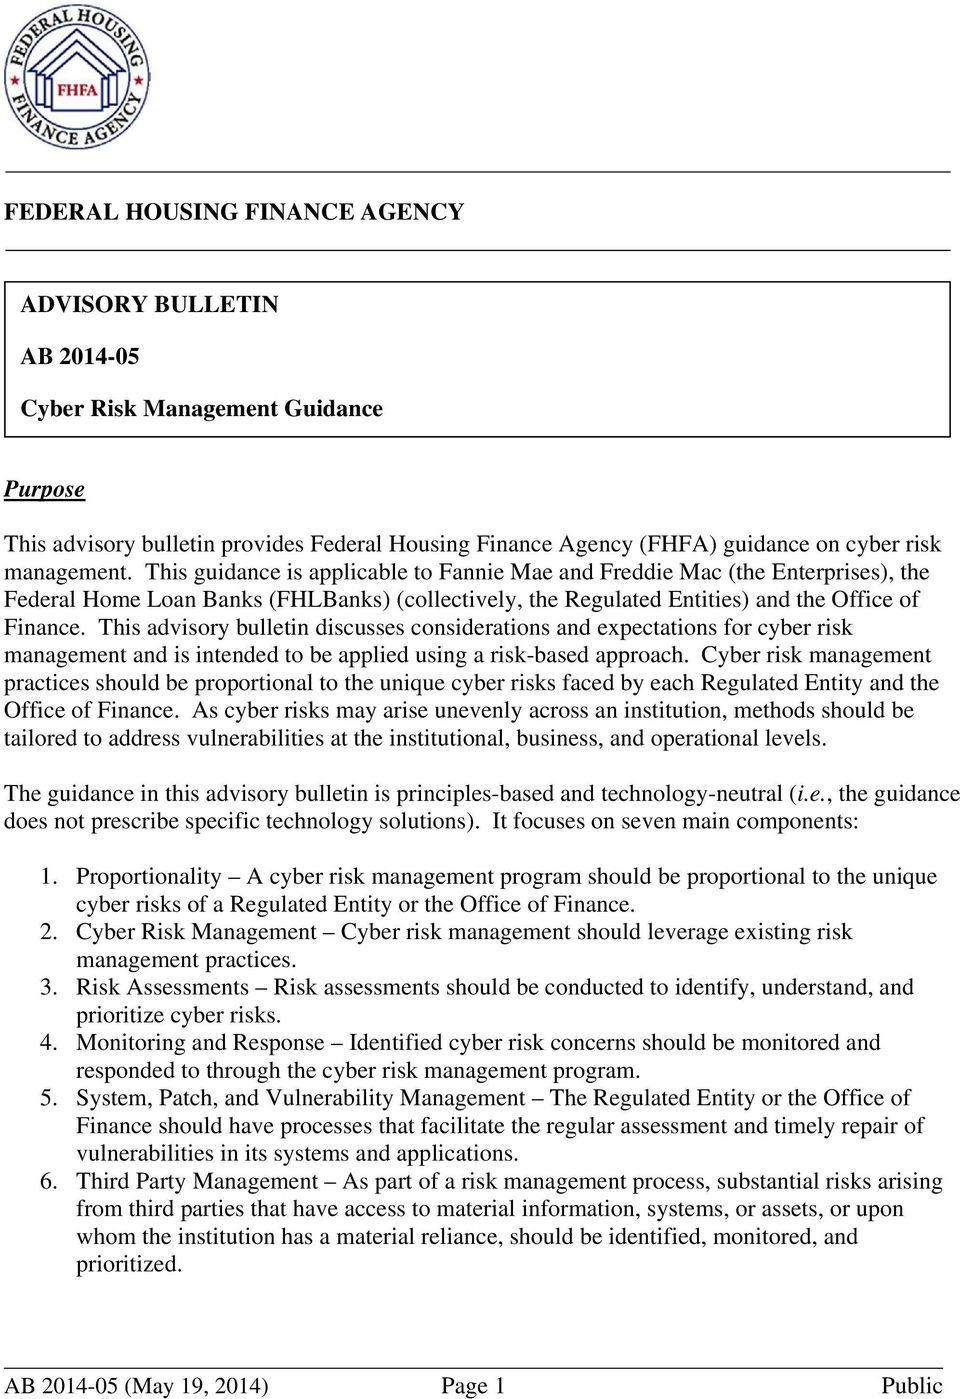 This advisory bulletin discusses considerations and expectations for cyber risk management and is intended to be applied using a risk-based approach.